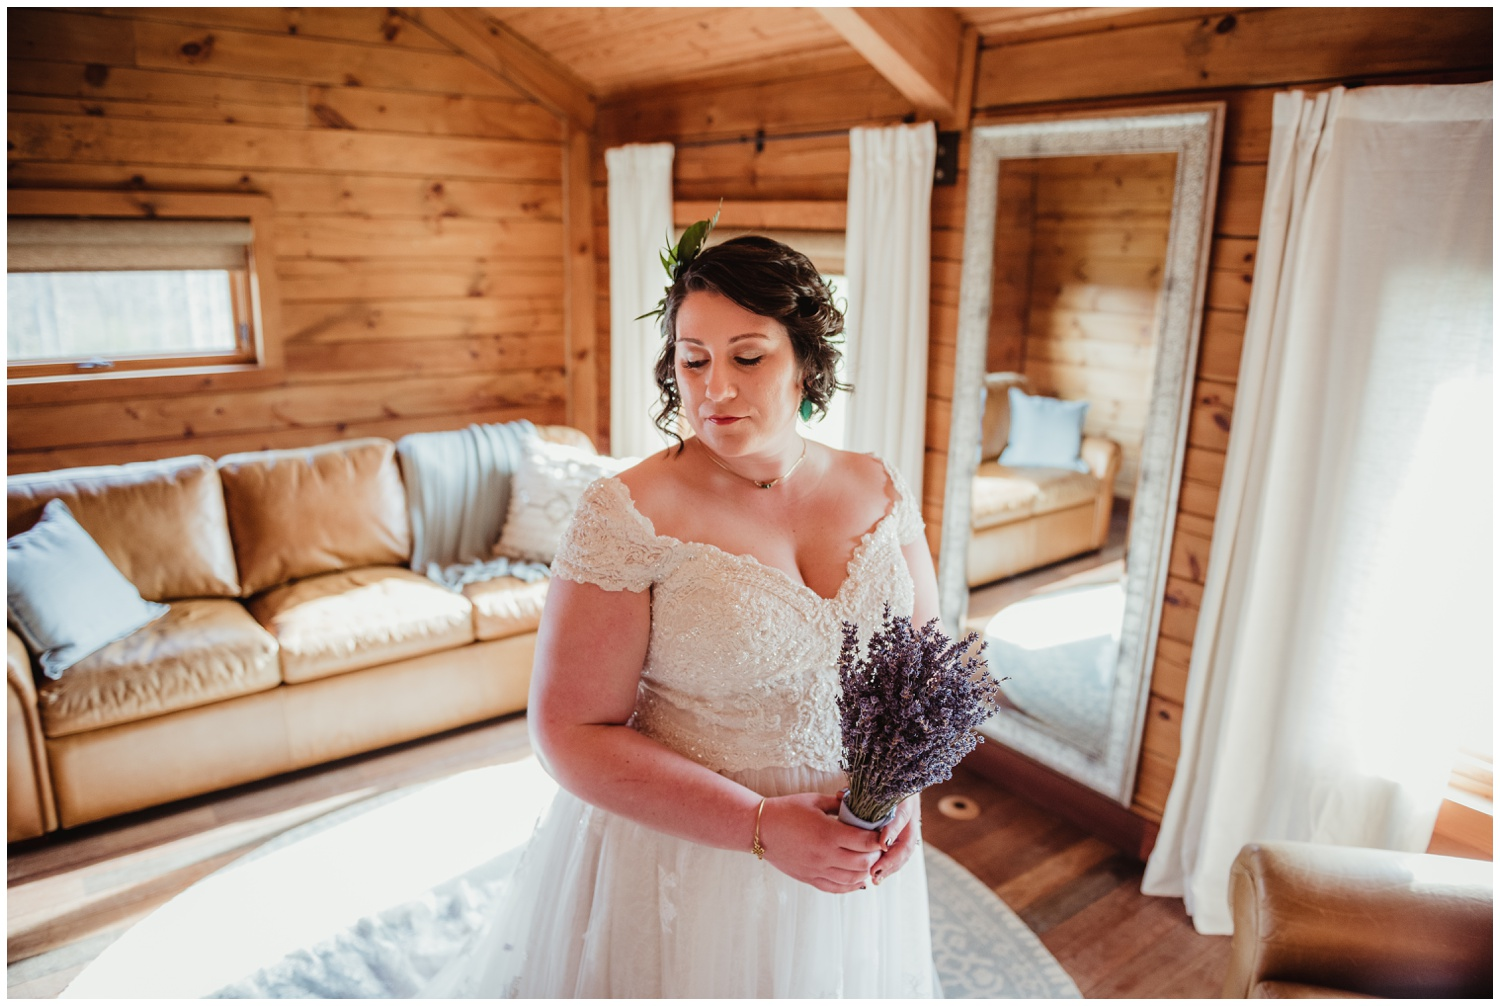 The bride posing in her bridal suite before her wedding day at the Barn at Valhalla in Chapel Hill, taken by Rose Trail Images.